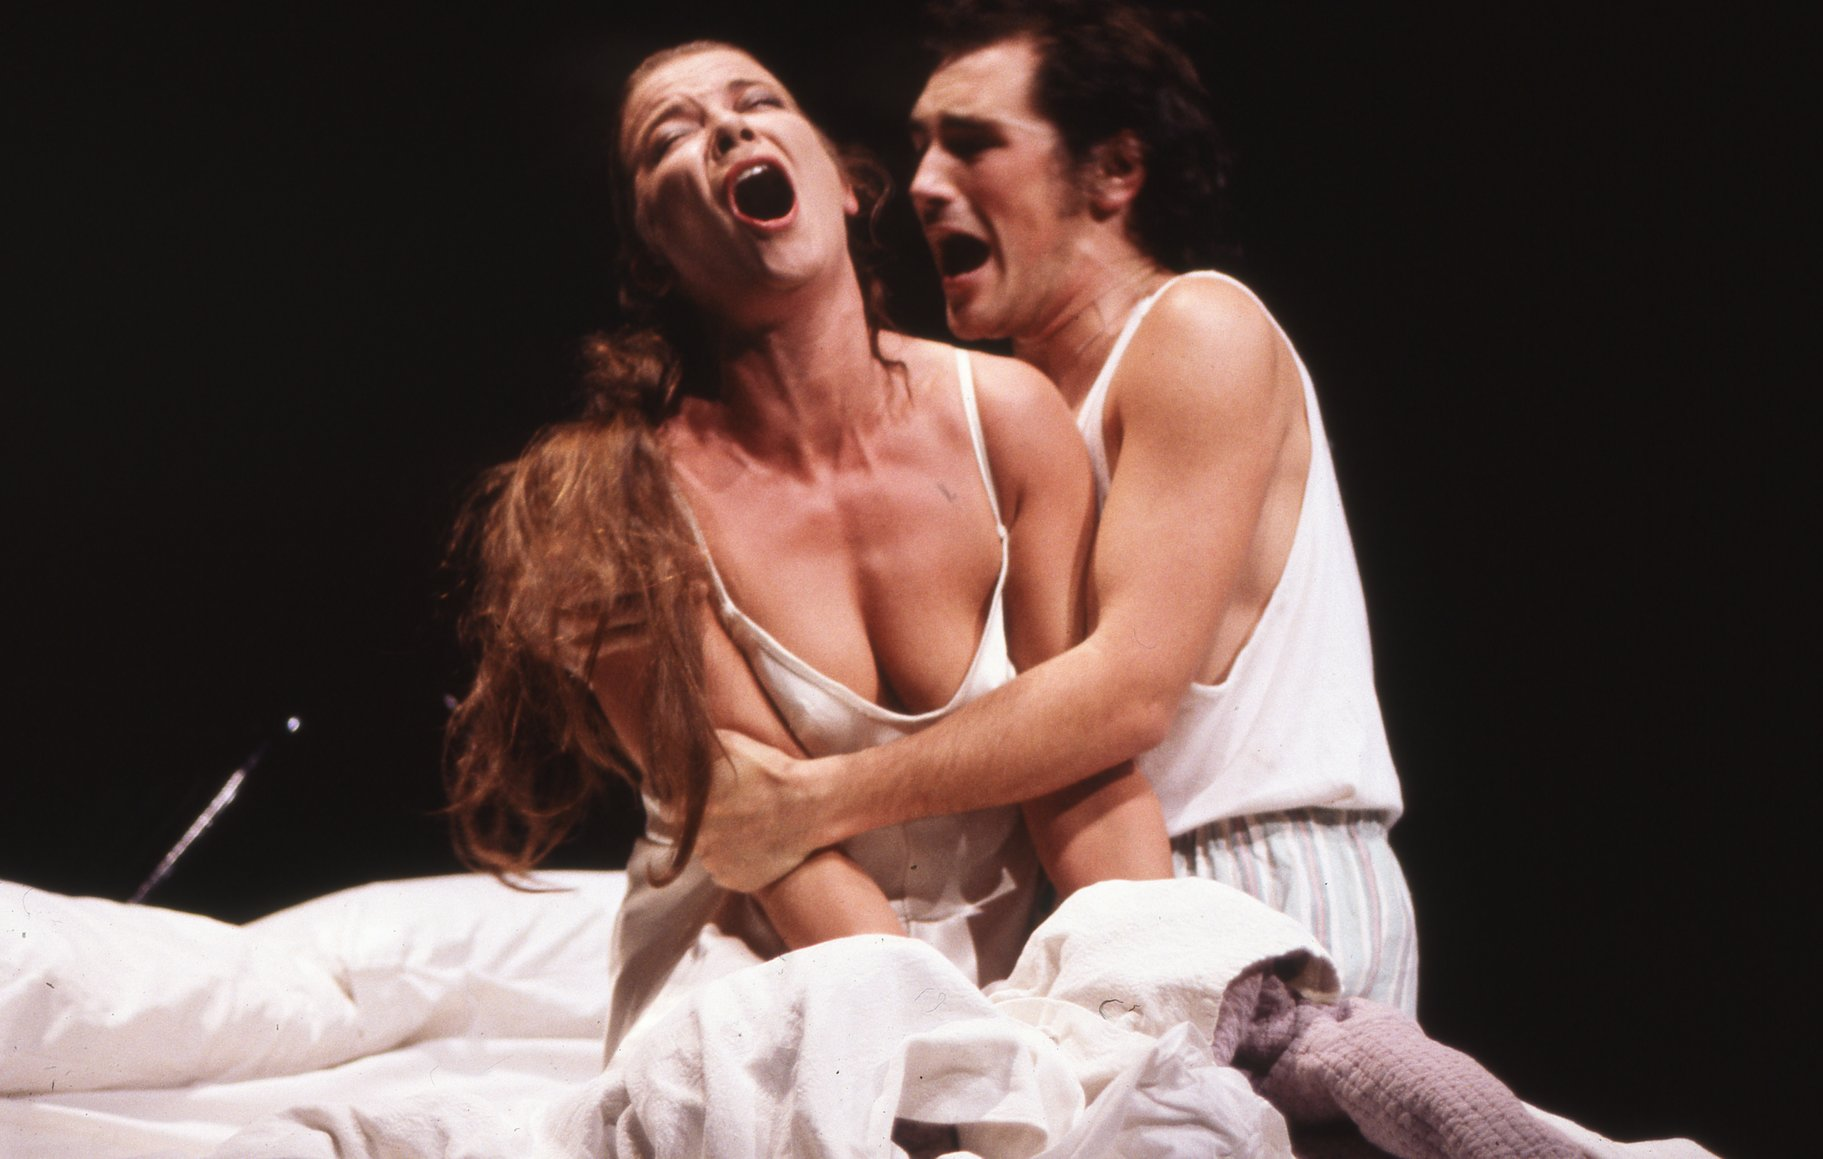 Hamlet and Gertrude in the 1989 production of Hamlet.